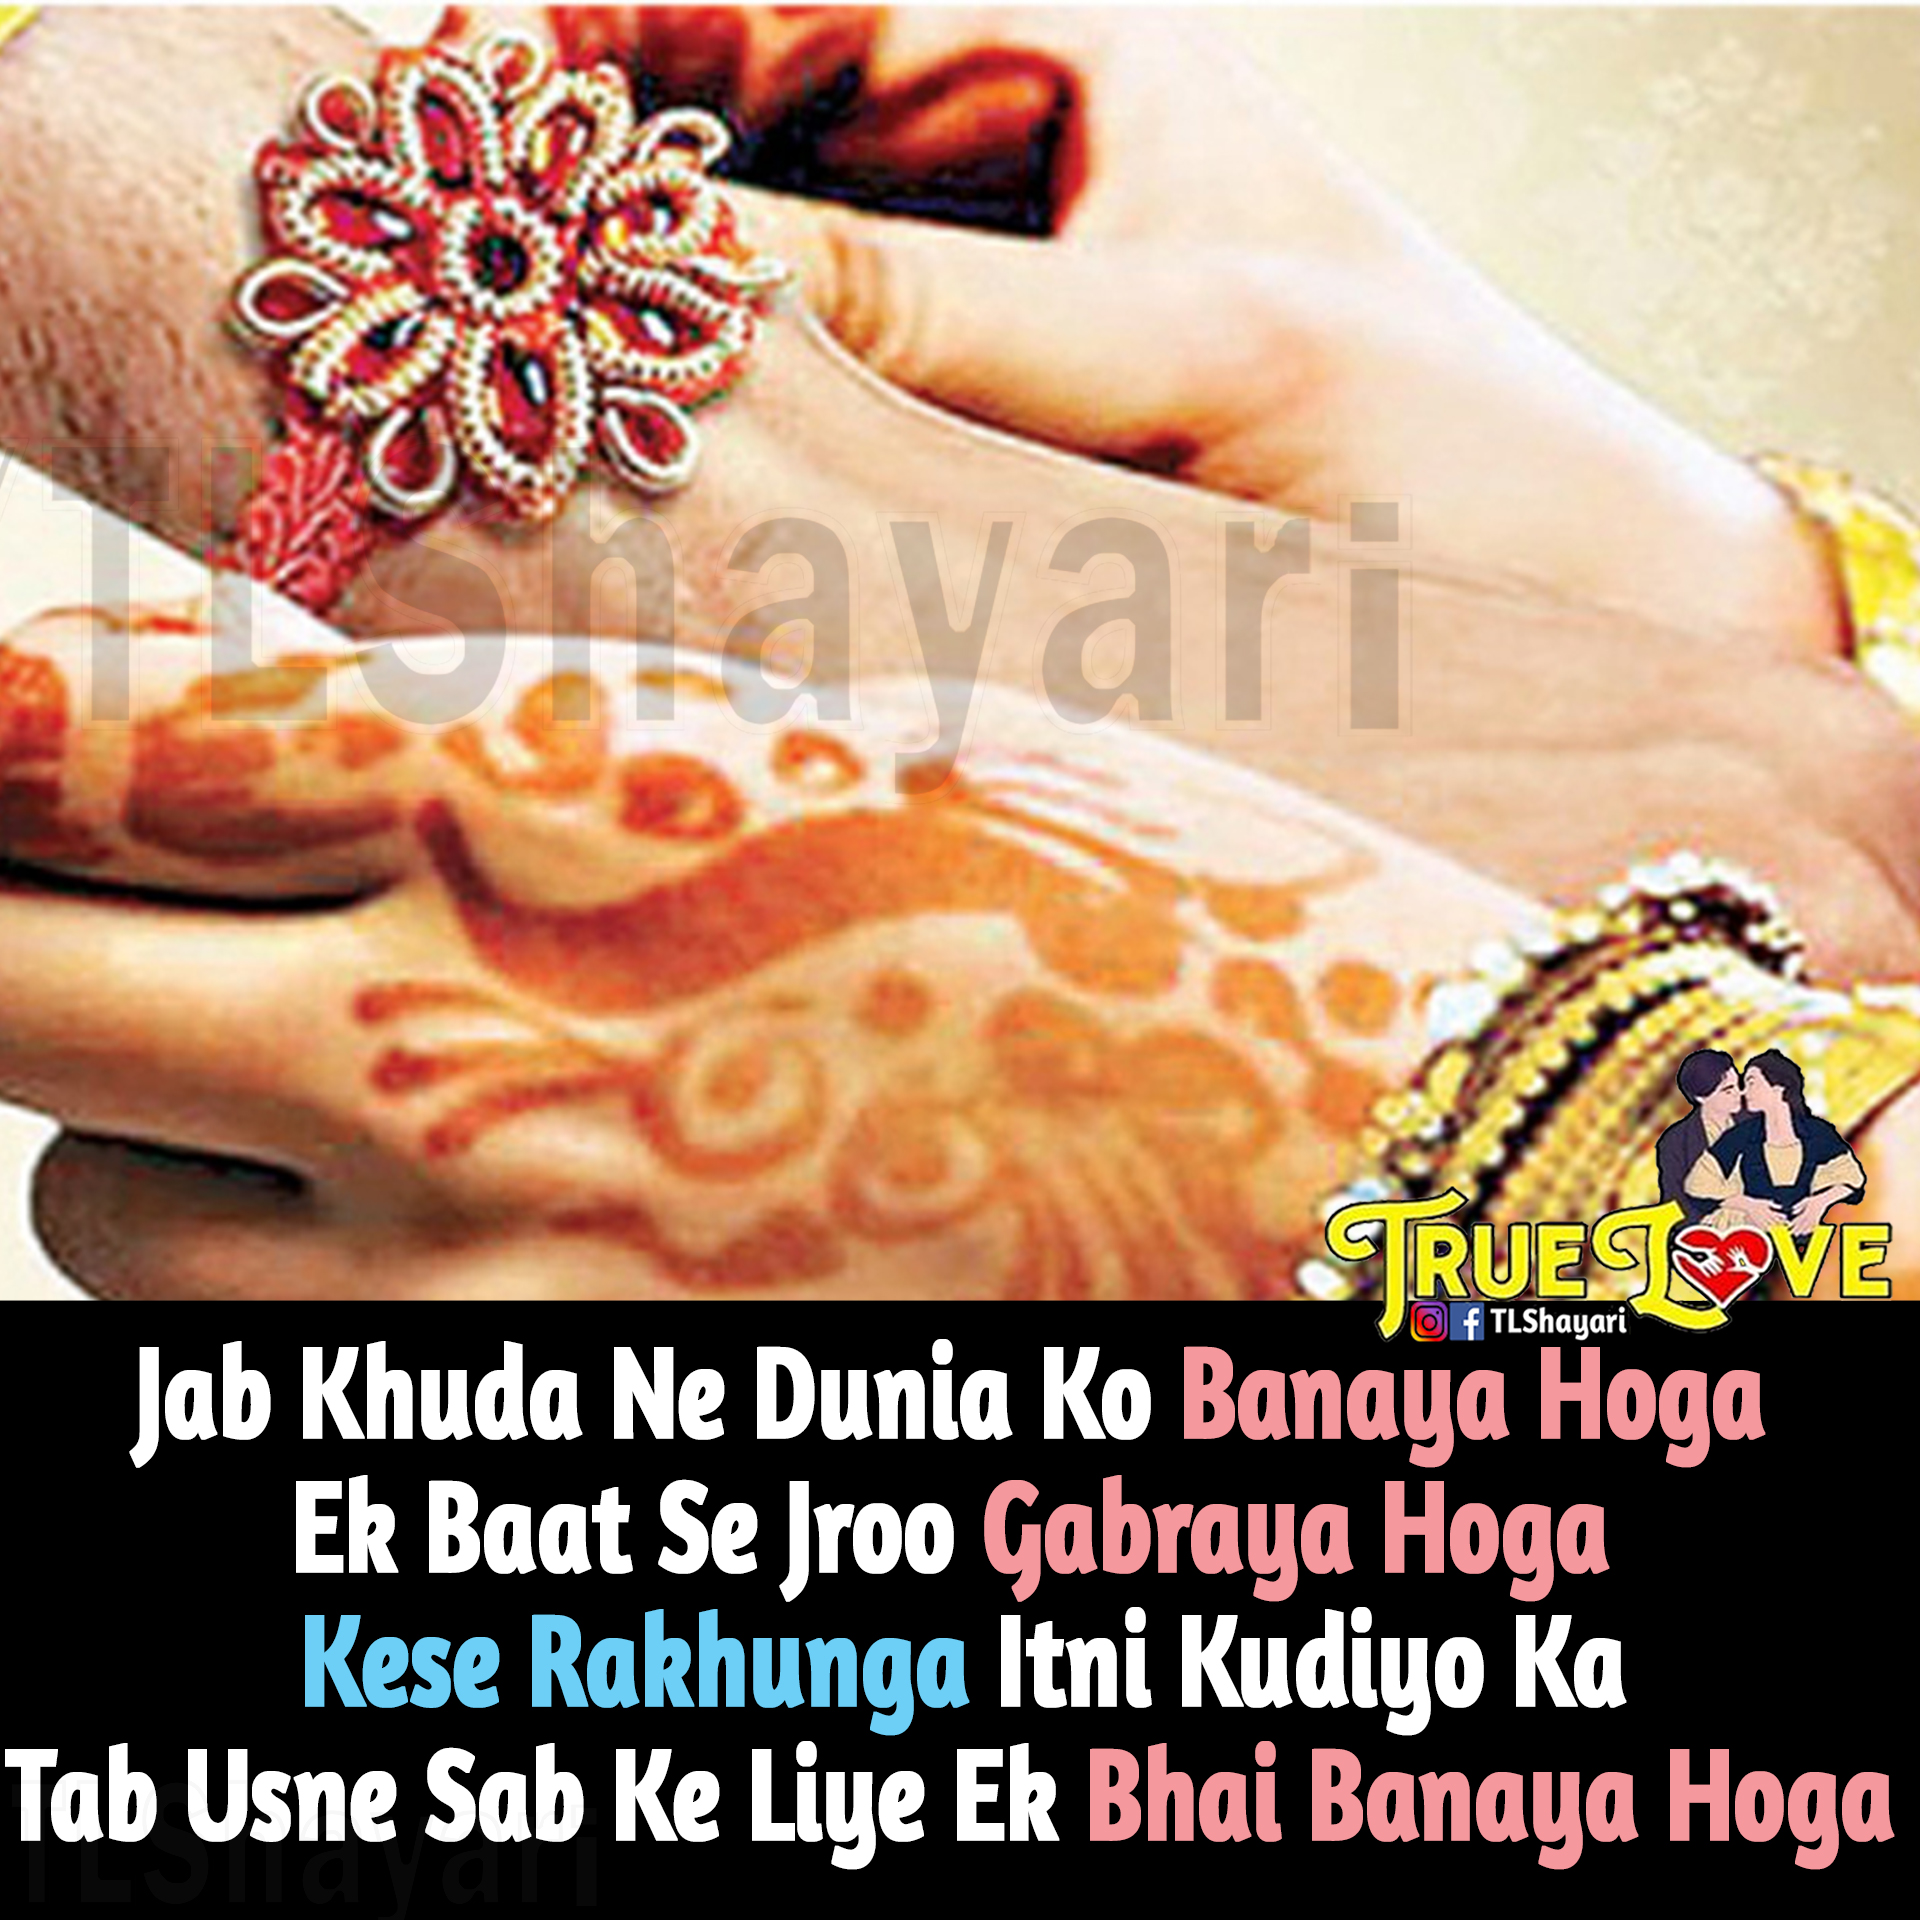 86 - Bhai Behan Shayari: Best Collection With Images